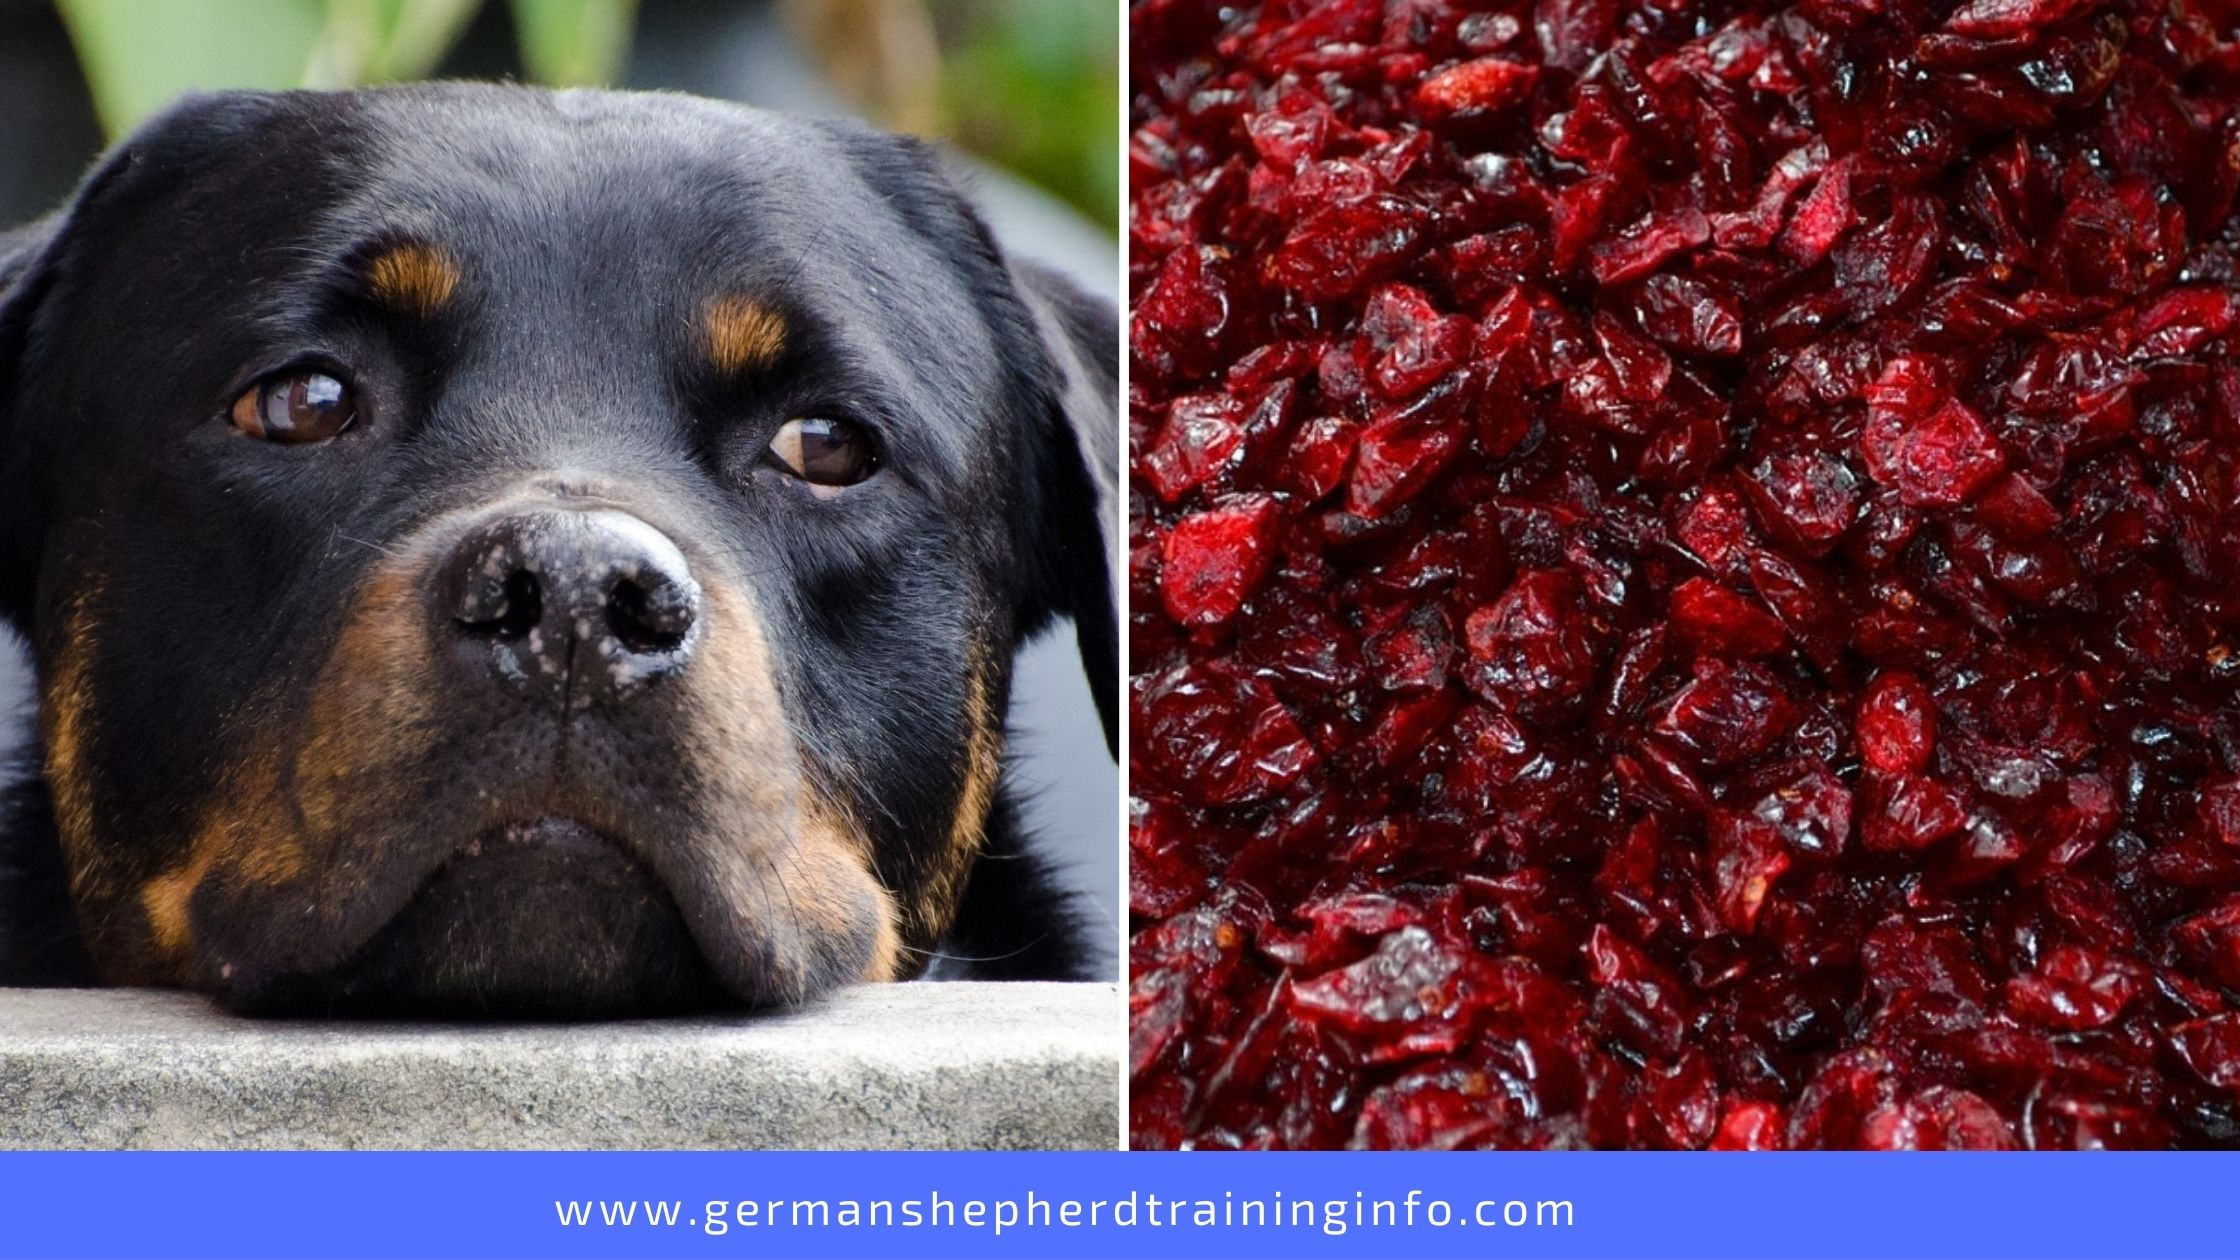 Can Dogs Eat Dried Cranberries?